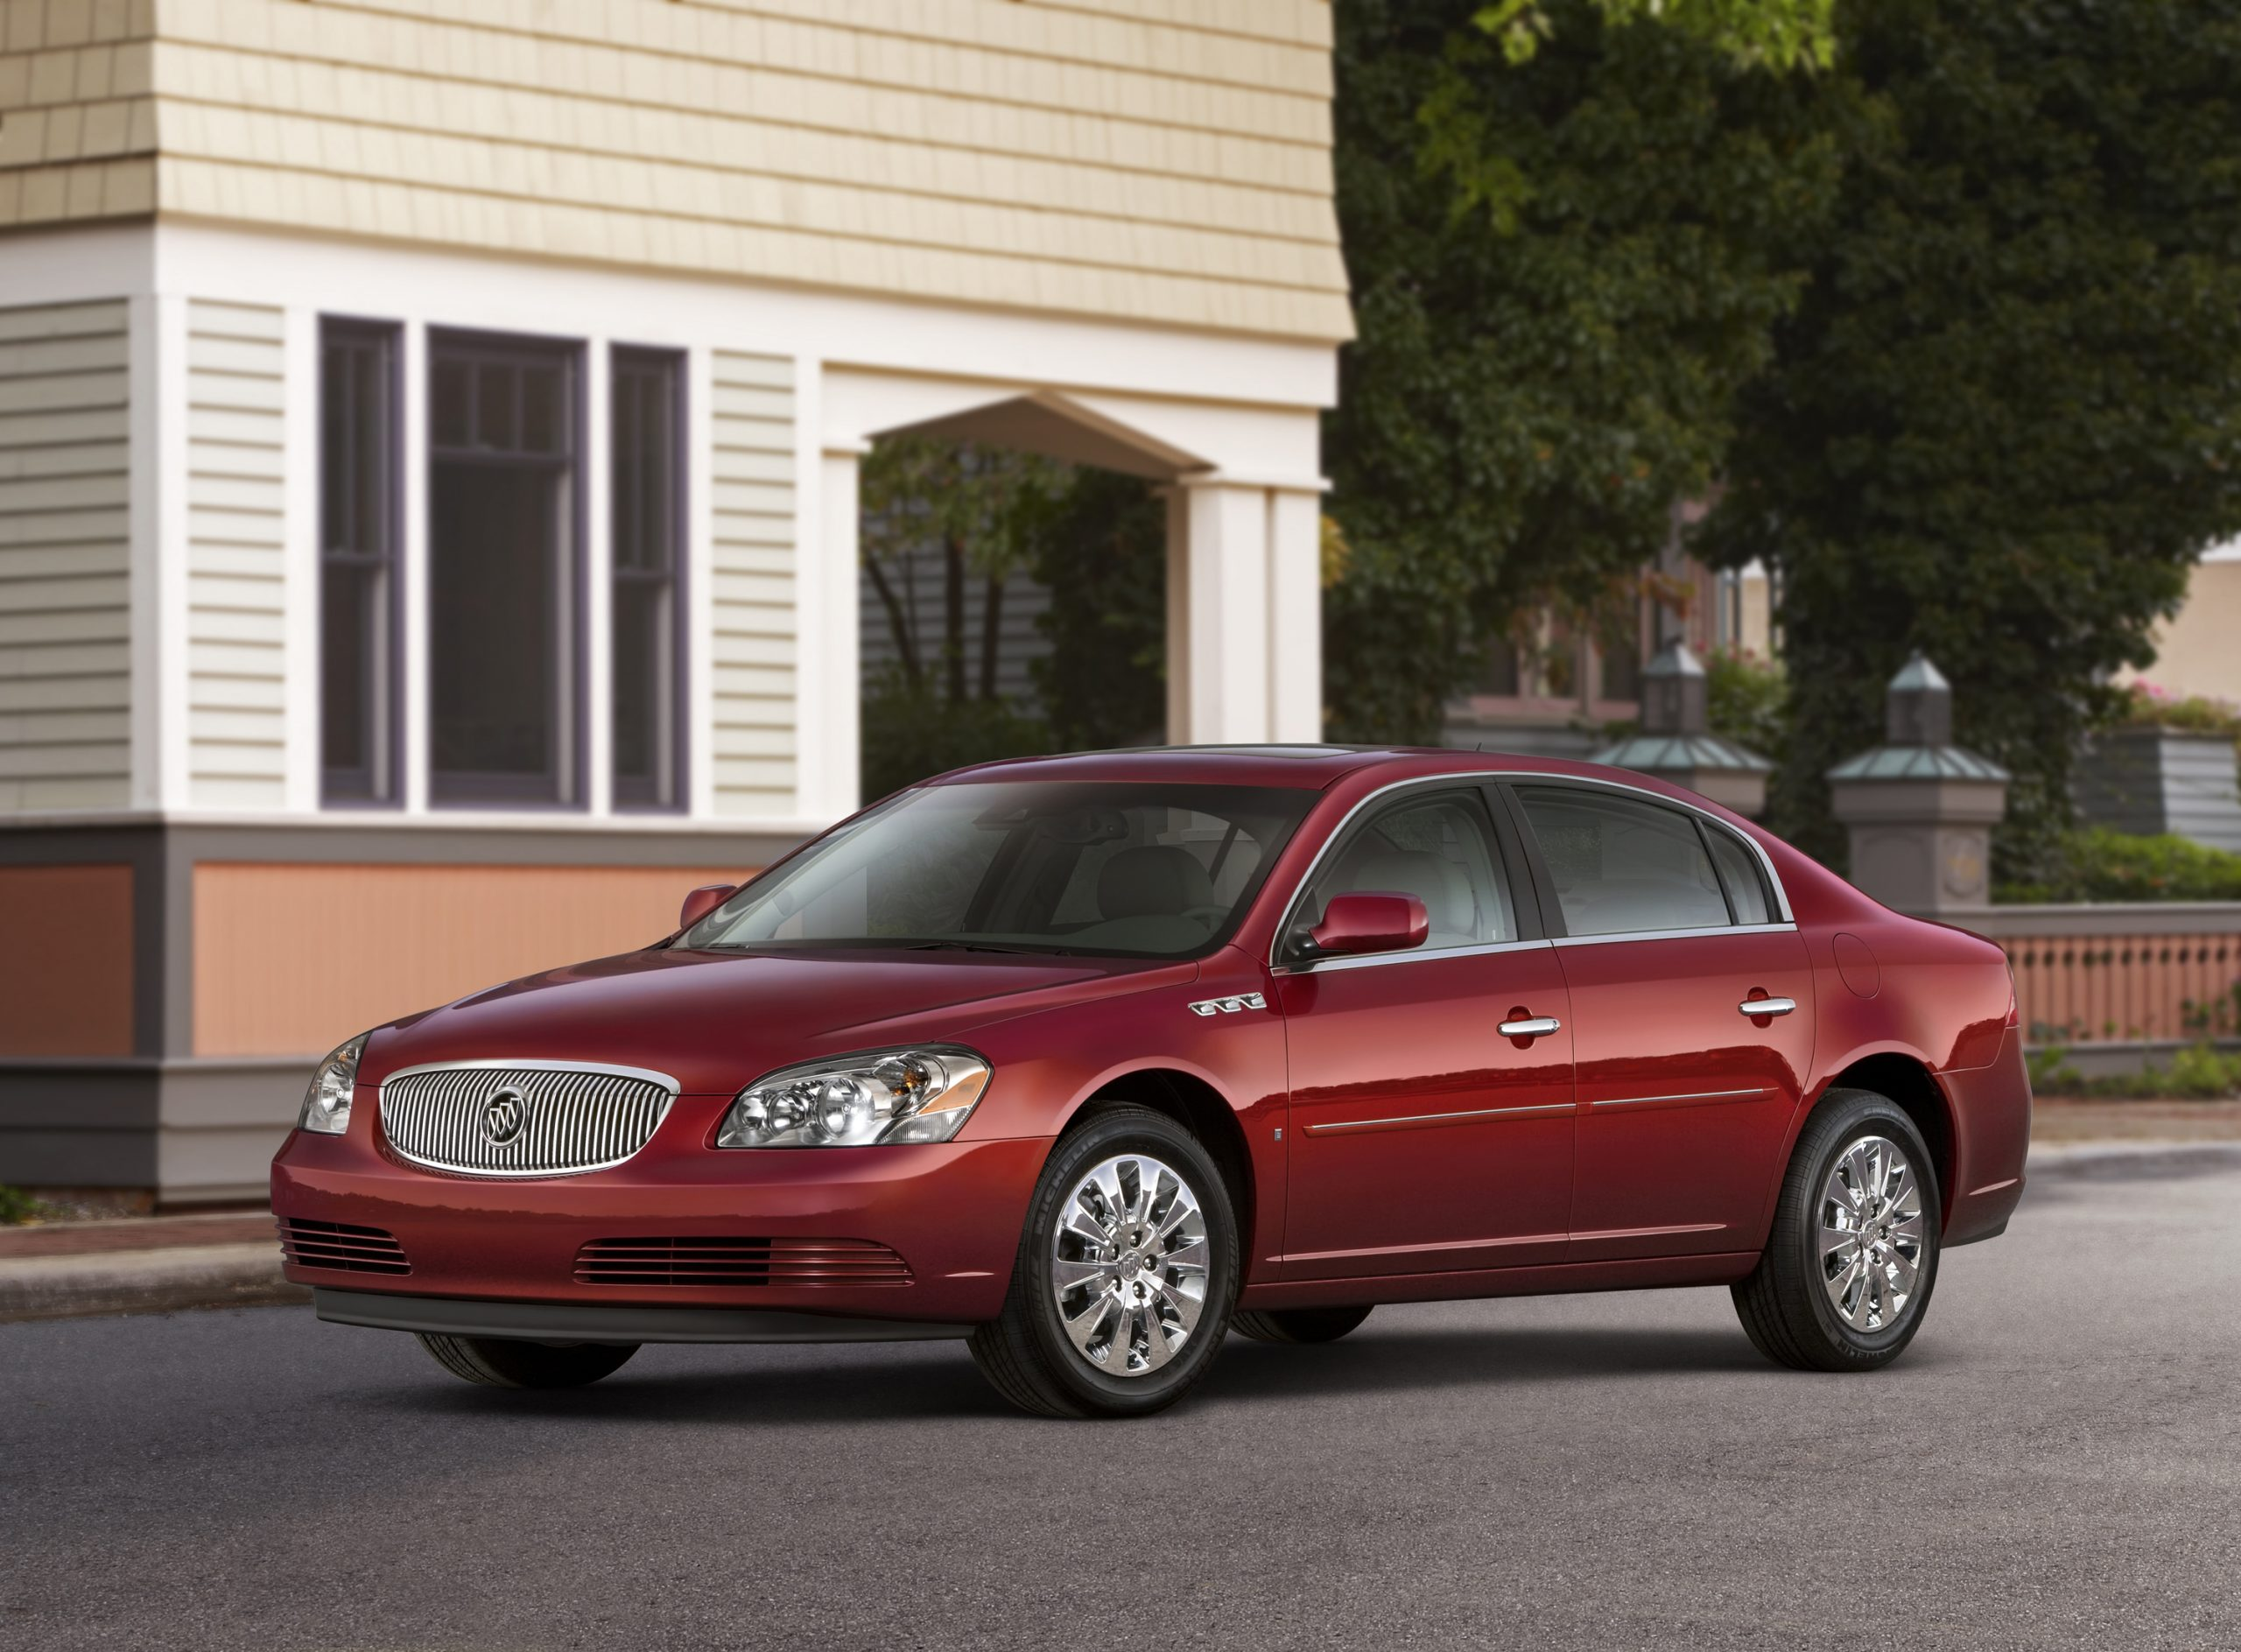 Are You Ready To Wave Goodbye To The Buick Lucerne? | Gm New 2021 Buick Lucerne Models, Manual, Issues